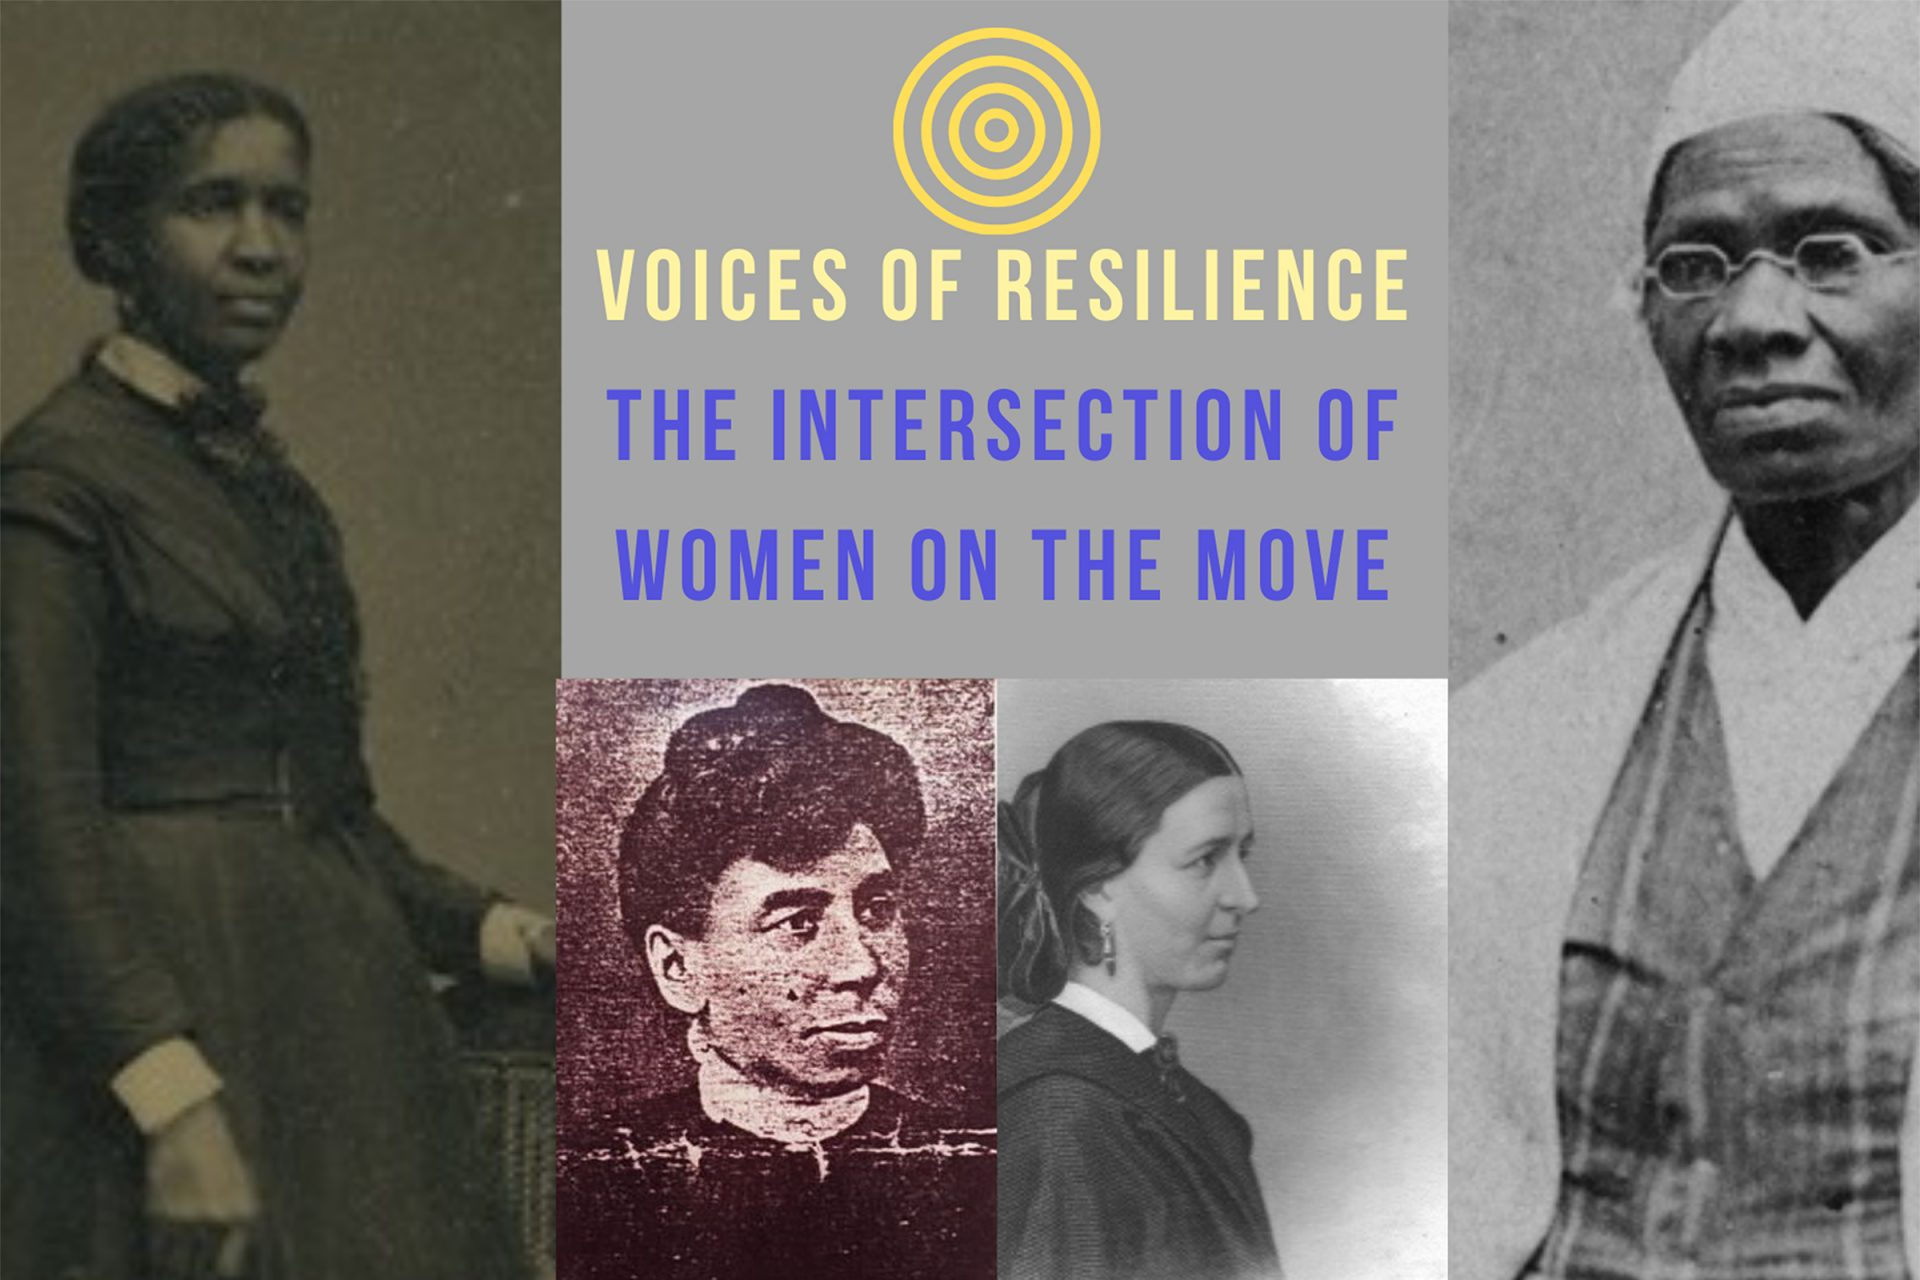 Voice of Resilience: The Intersection of Women on the Move